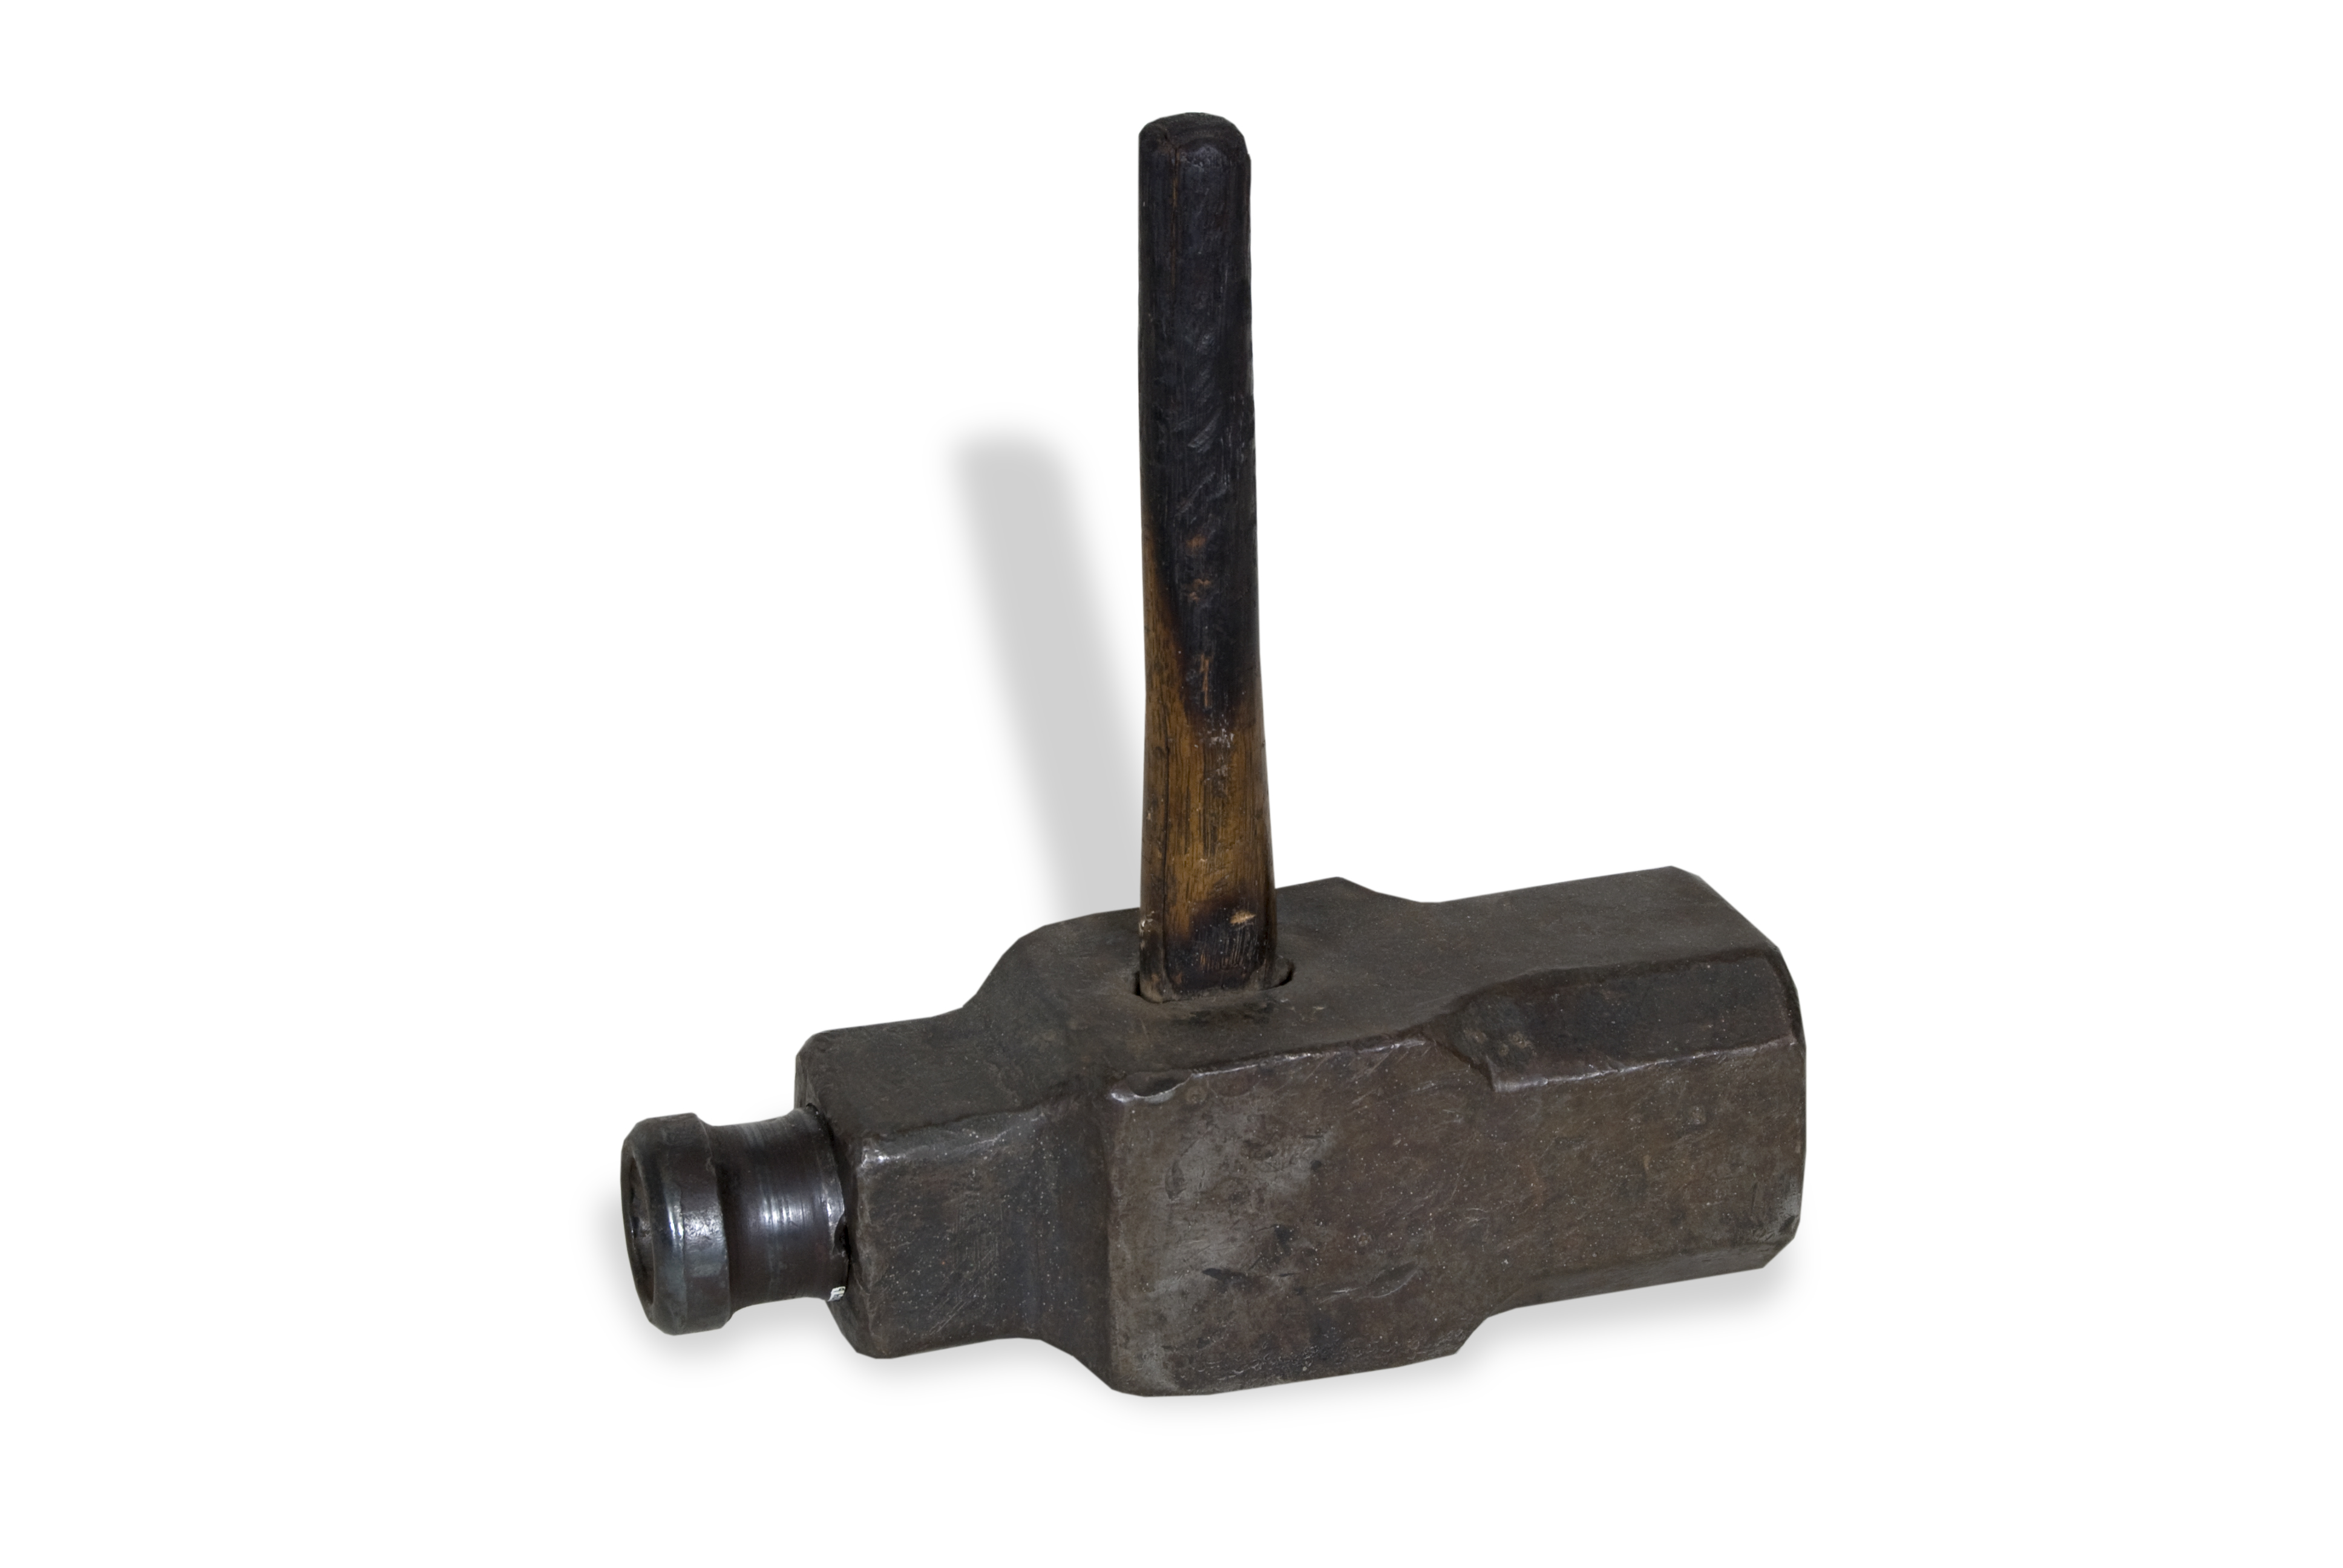 Railroad pounding tool